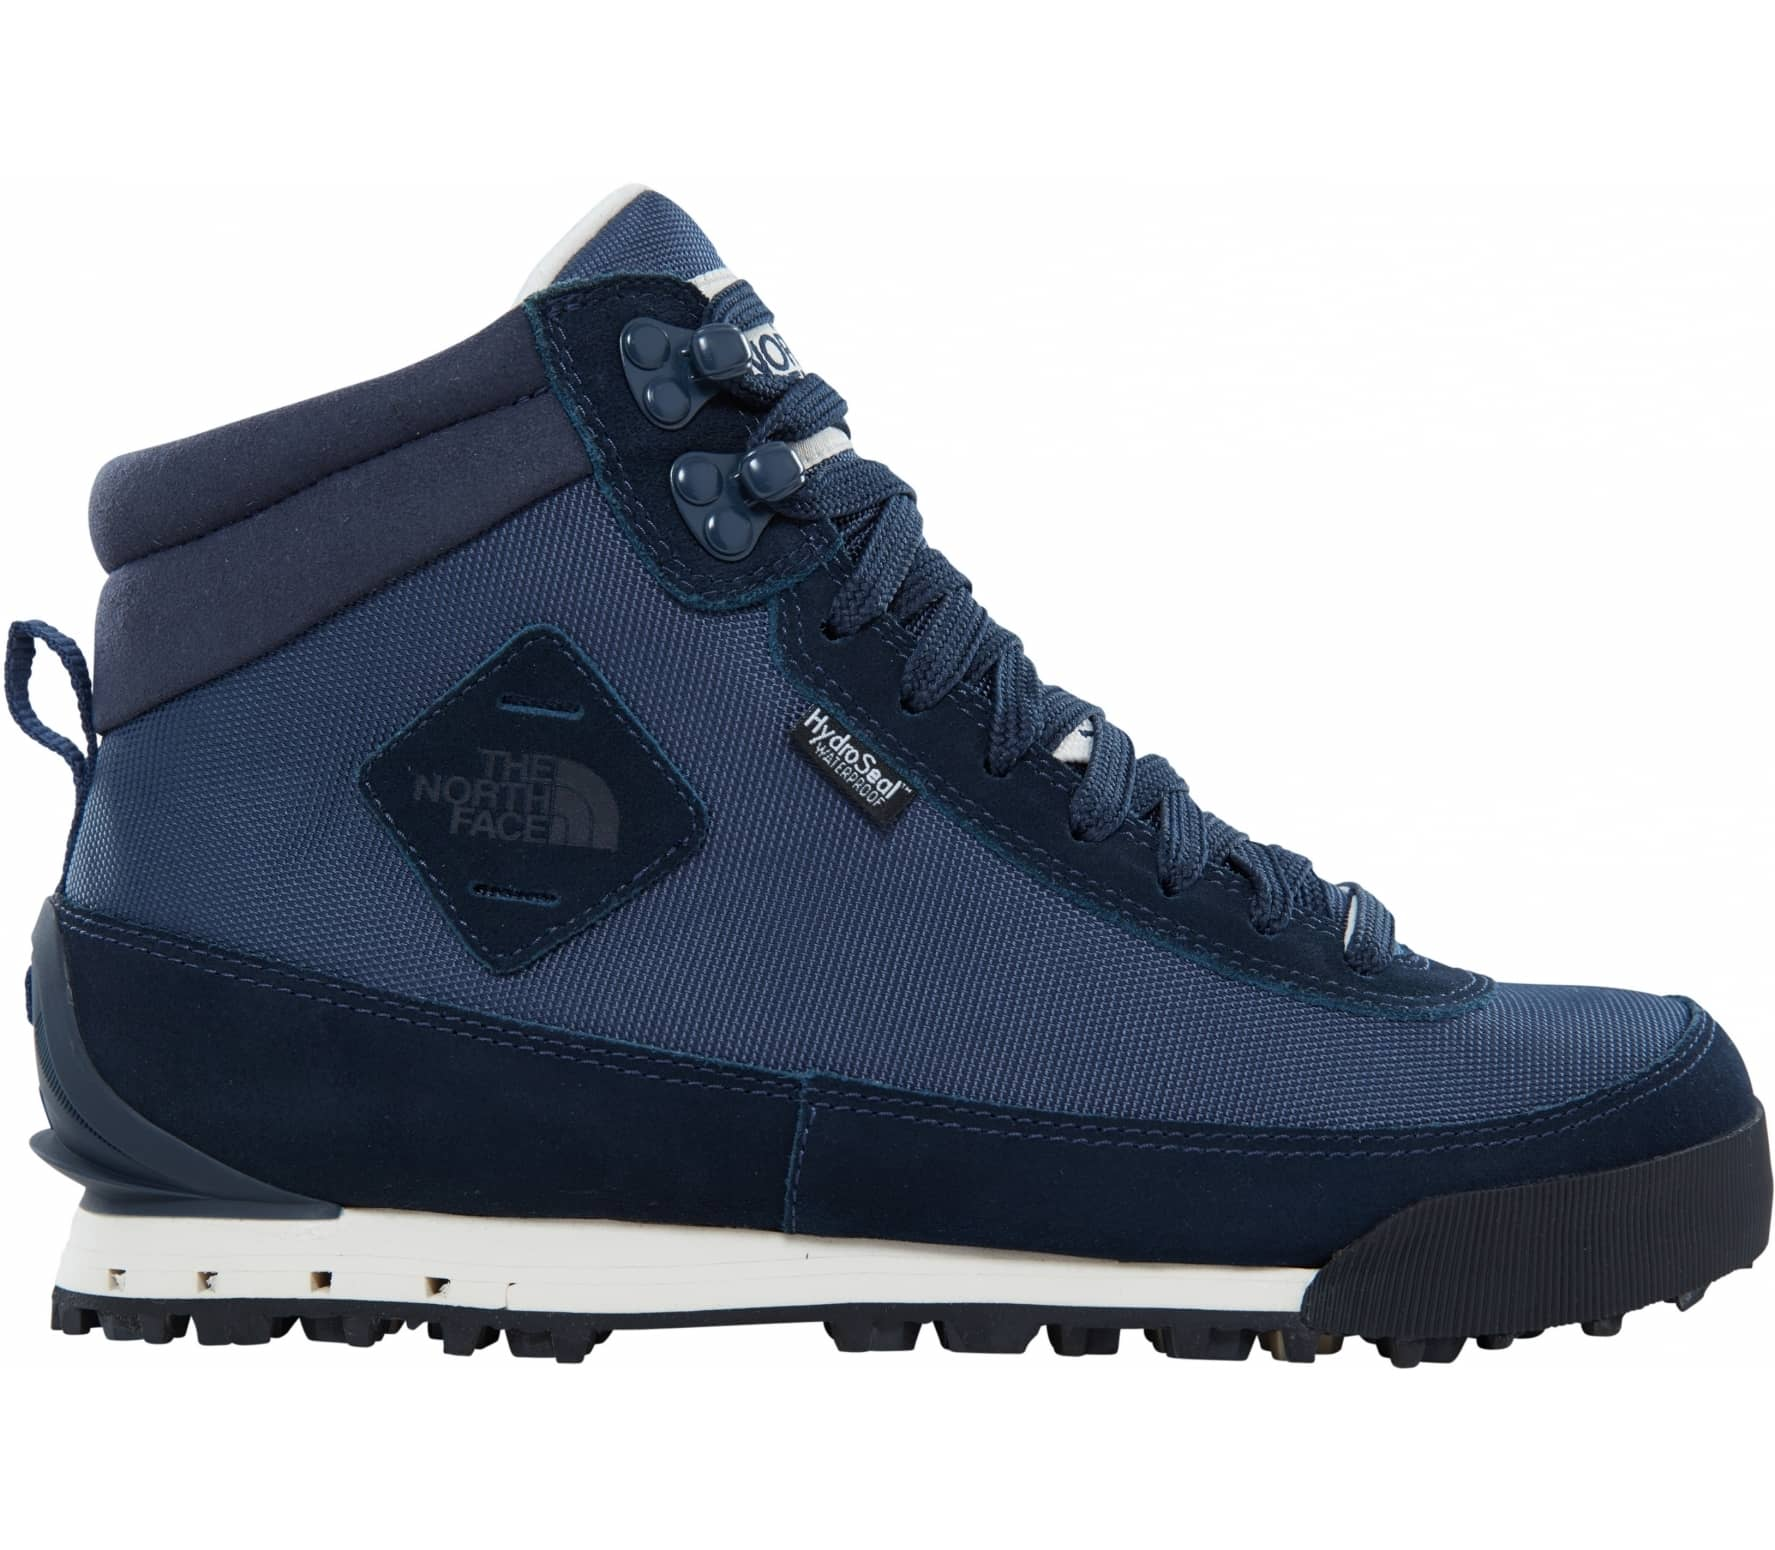 8c1f4269d The North Face Back-To-Berkeley NL men's winter shoes Men